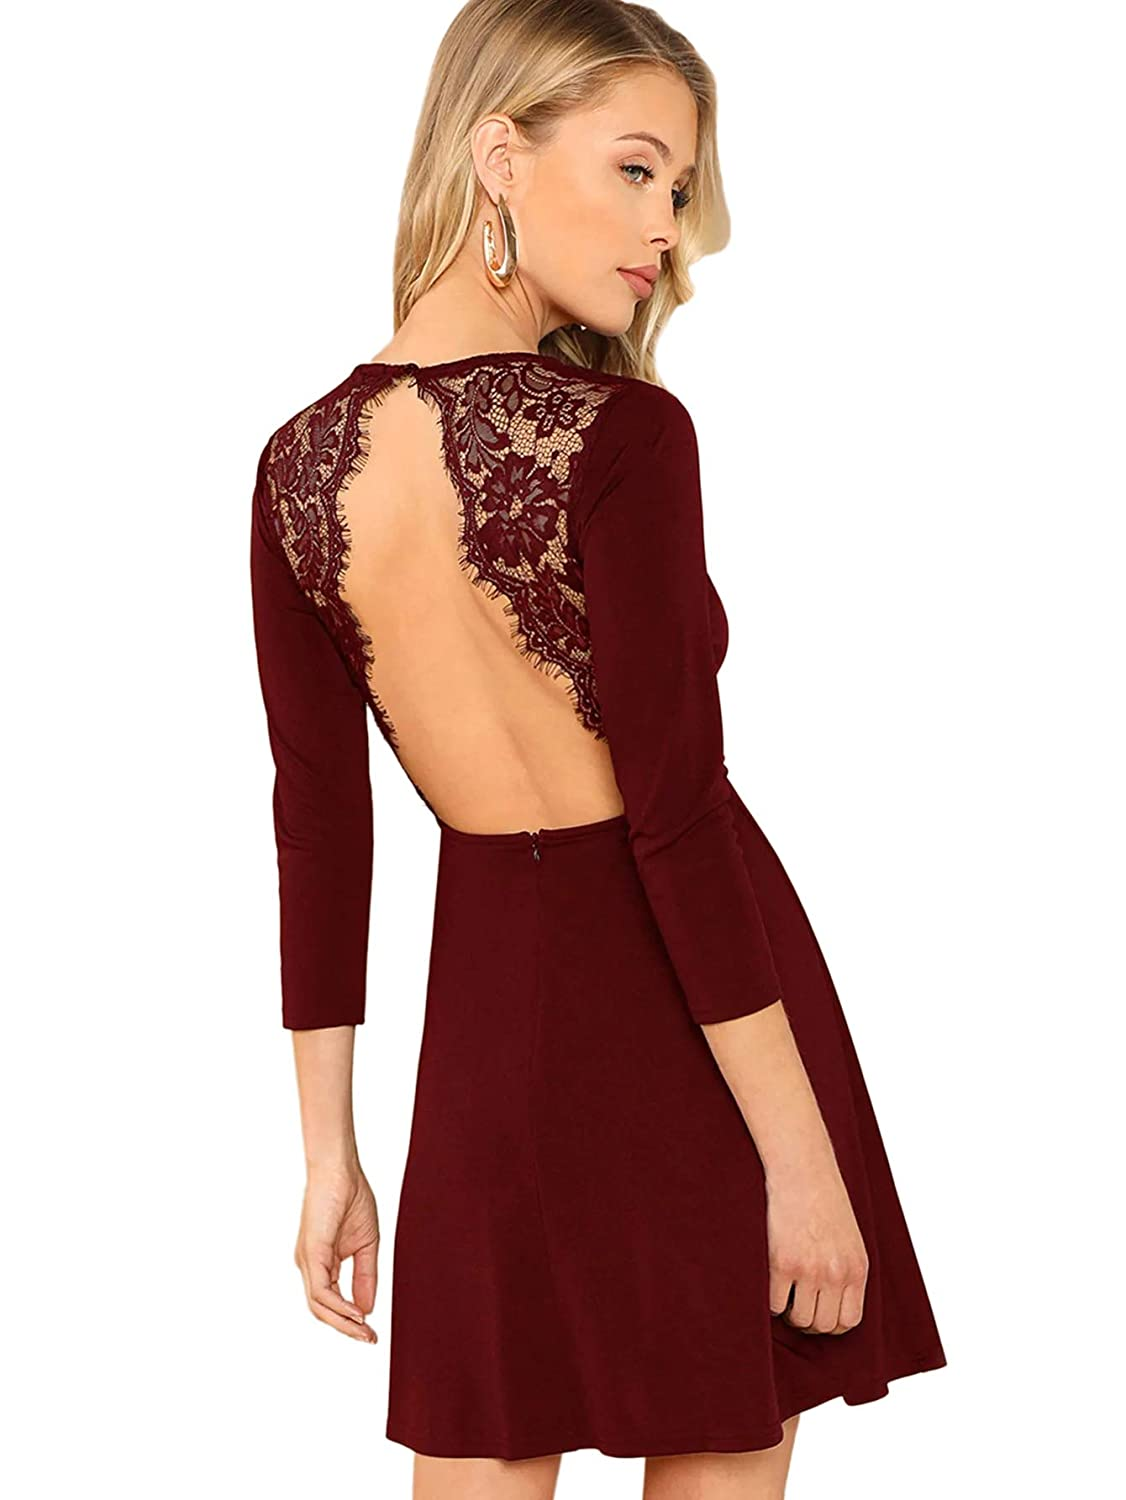 e18fdcbb4f Amazon.com: SheIn Women's Sexy Long Sleeve Backless Lace Applique Cocktail  Party Mini Dress: Clothing